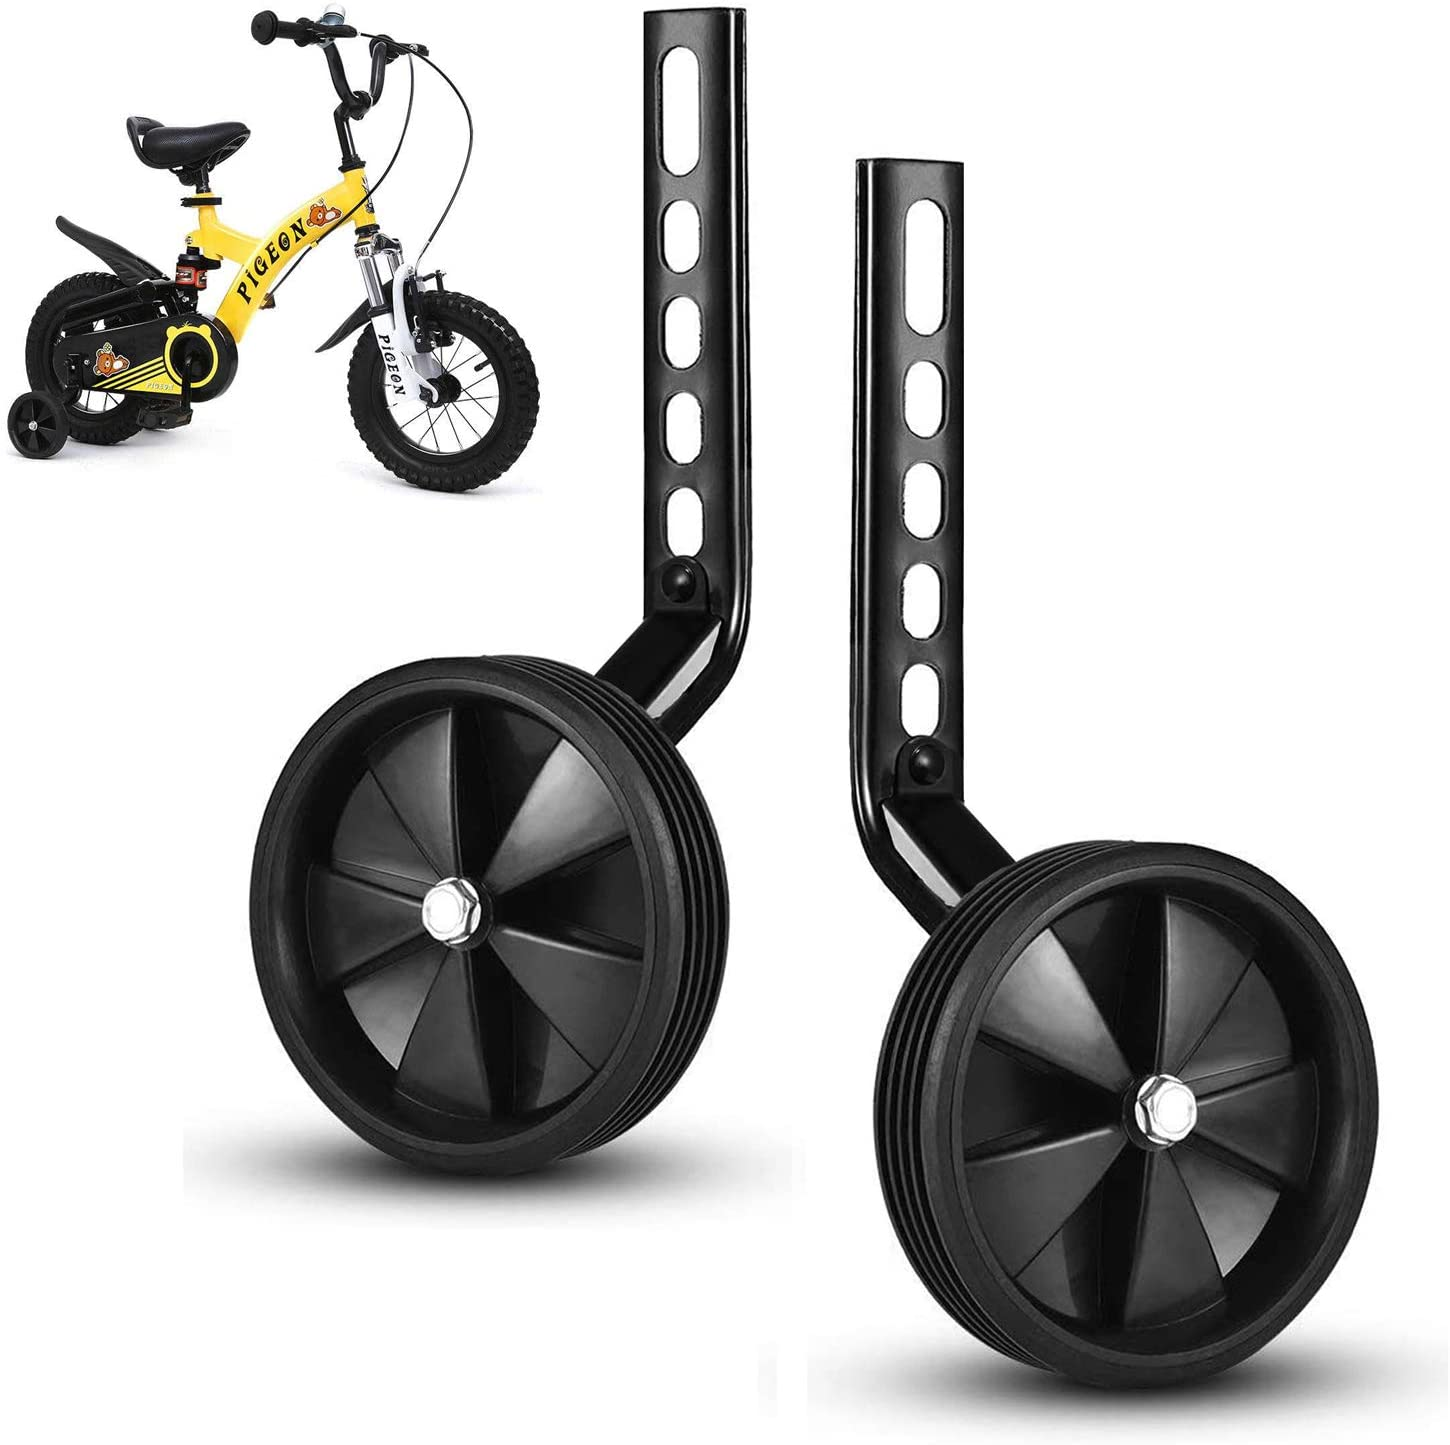 ZUDKSUY Bicycle Training Wheels Heavy Duty Training Wheels Anti-Slip Wheels Stabilizers Mounted Kit Fit for 12 14 16 18 inch Childrens Bikes White Wheels 1 Pair